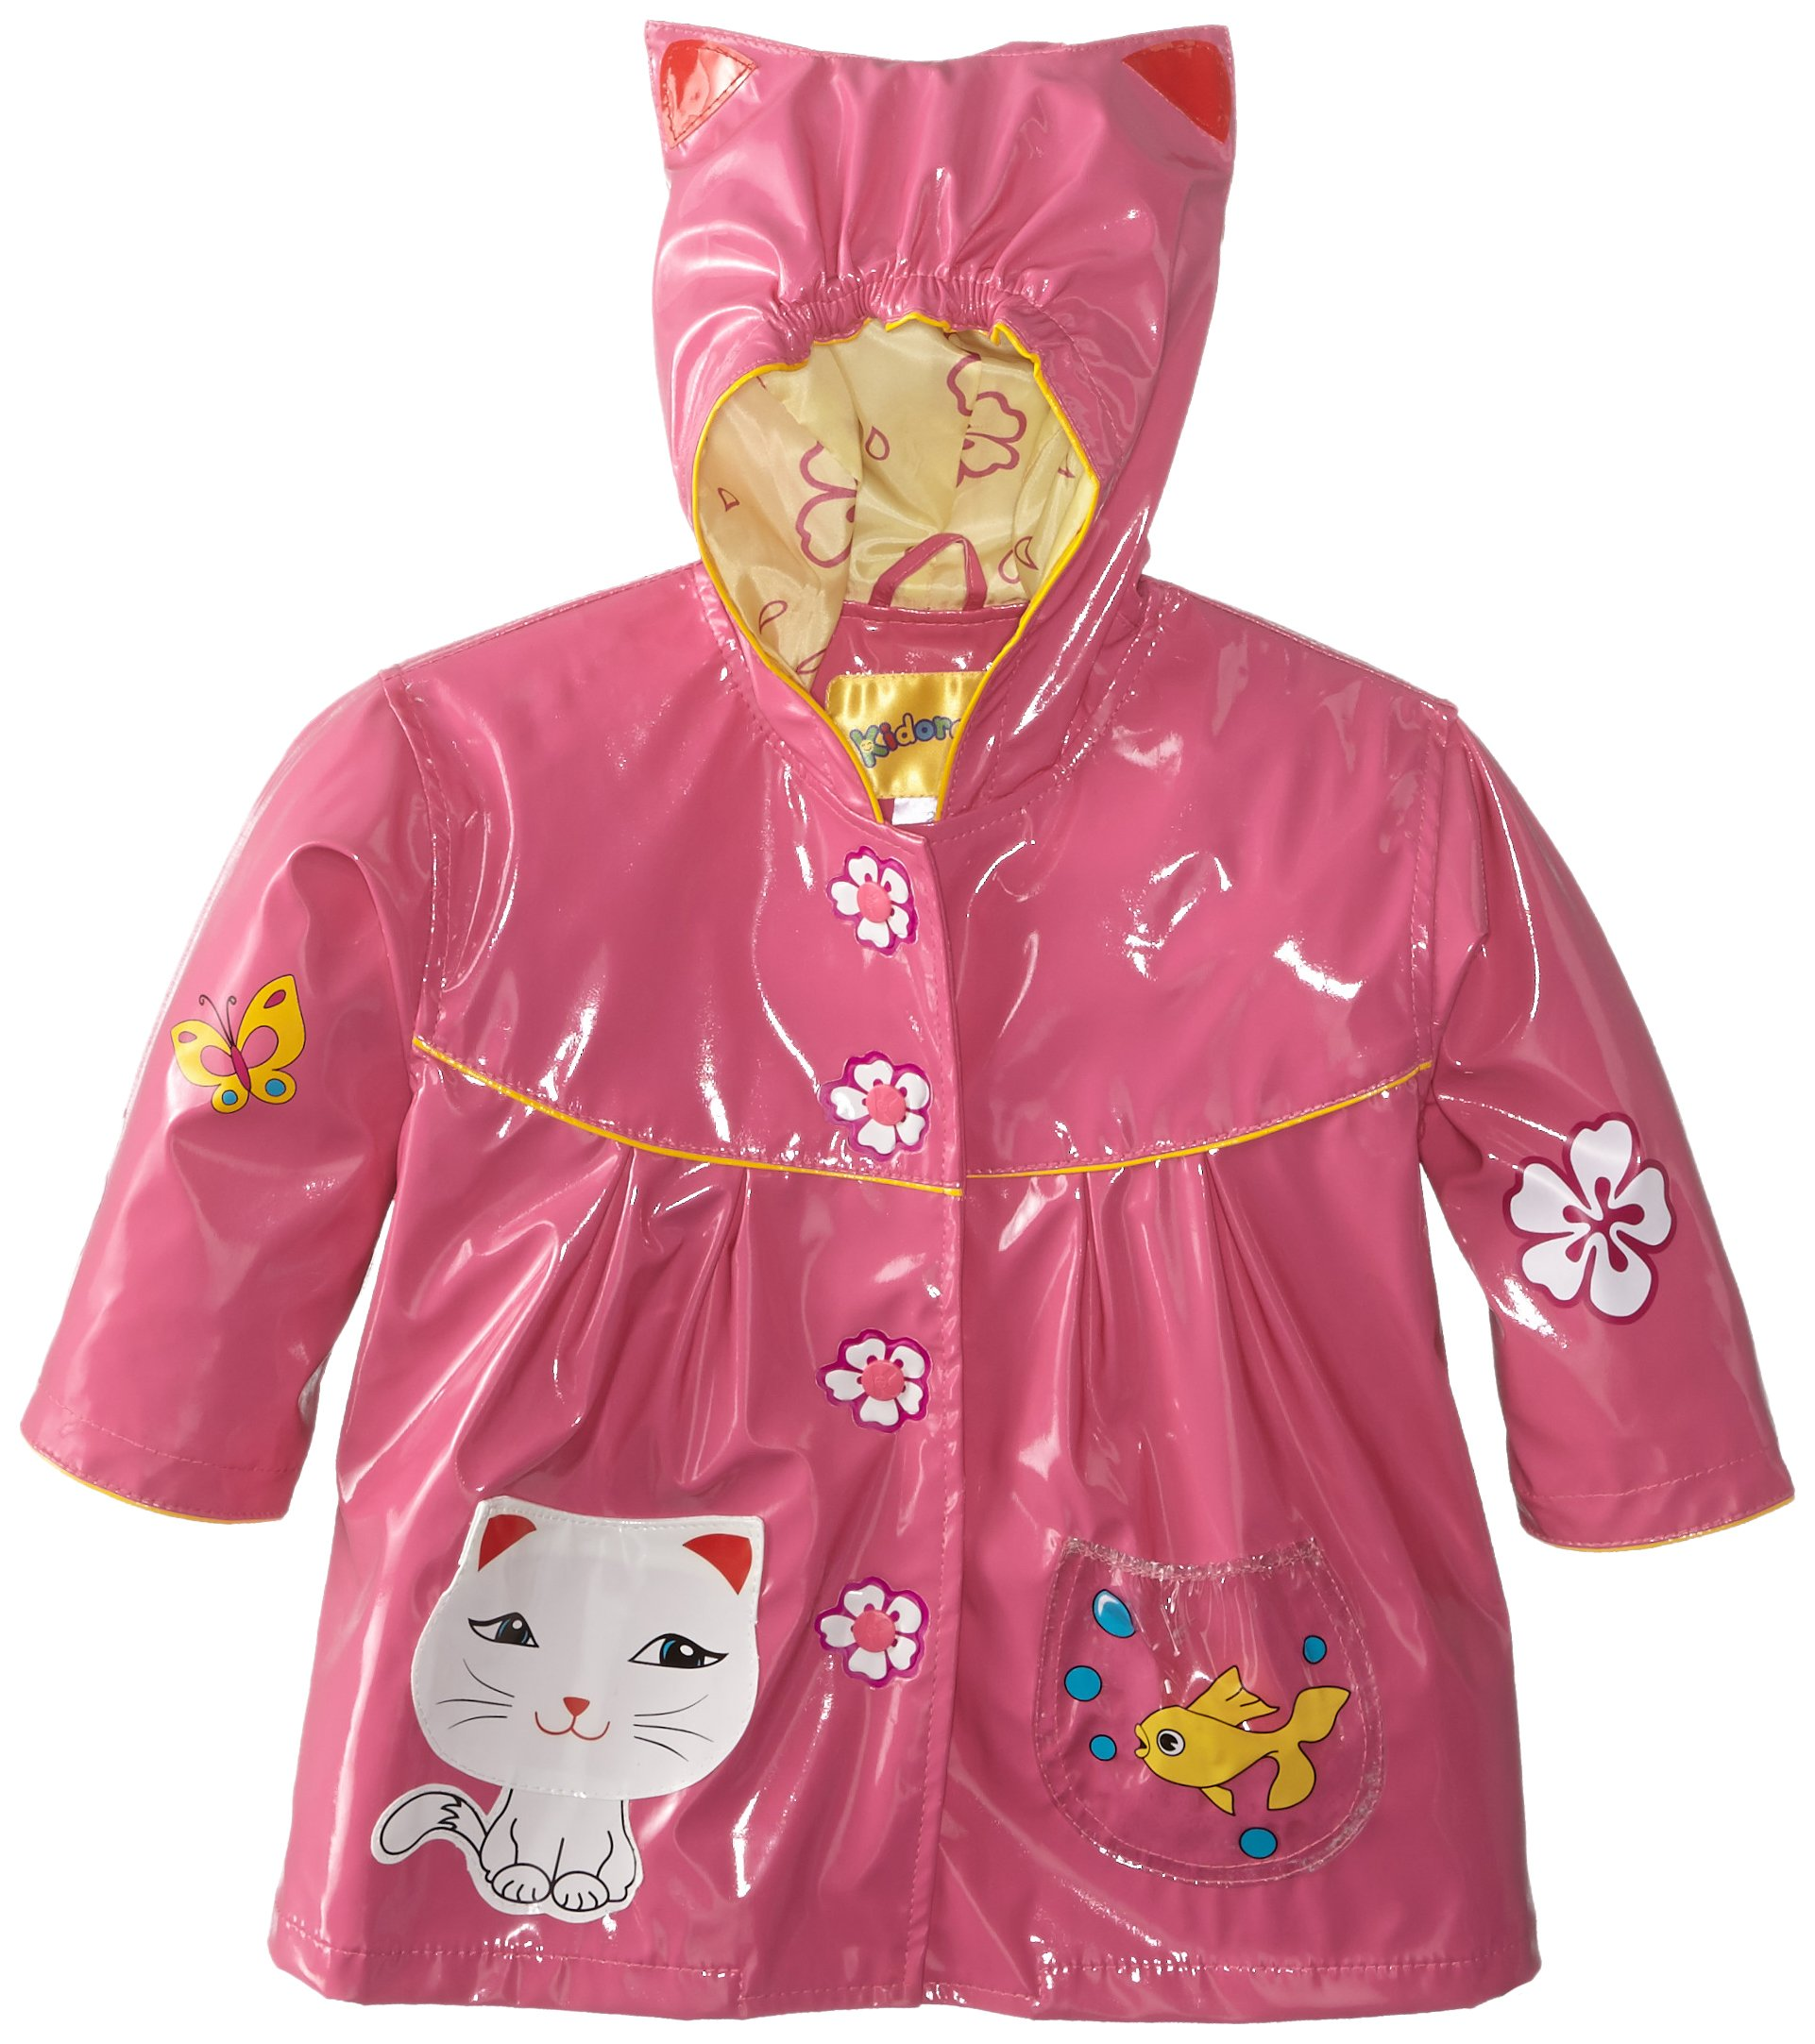 Kidorable Girls' Little Lucky Cat All Weather Waterproof Coat, Pink, 4/5 by Kidorable